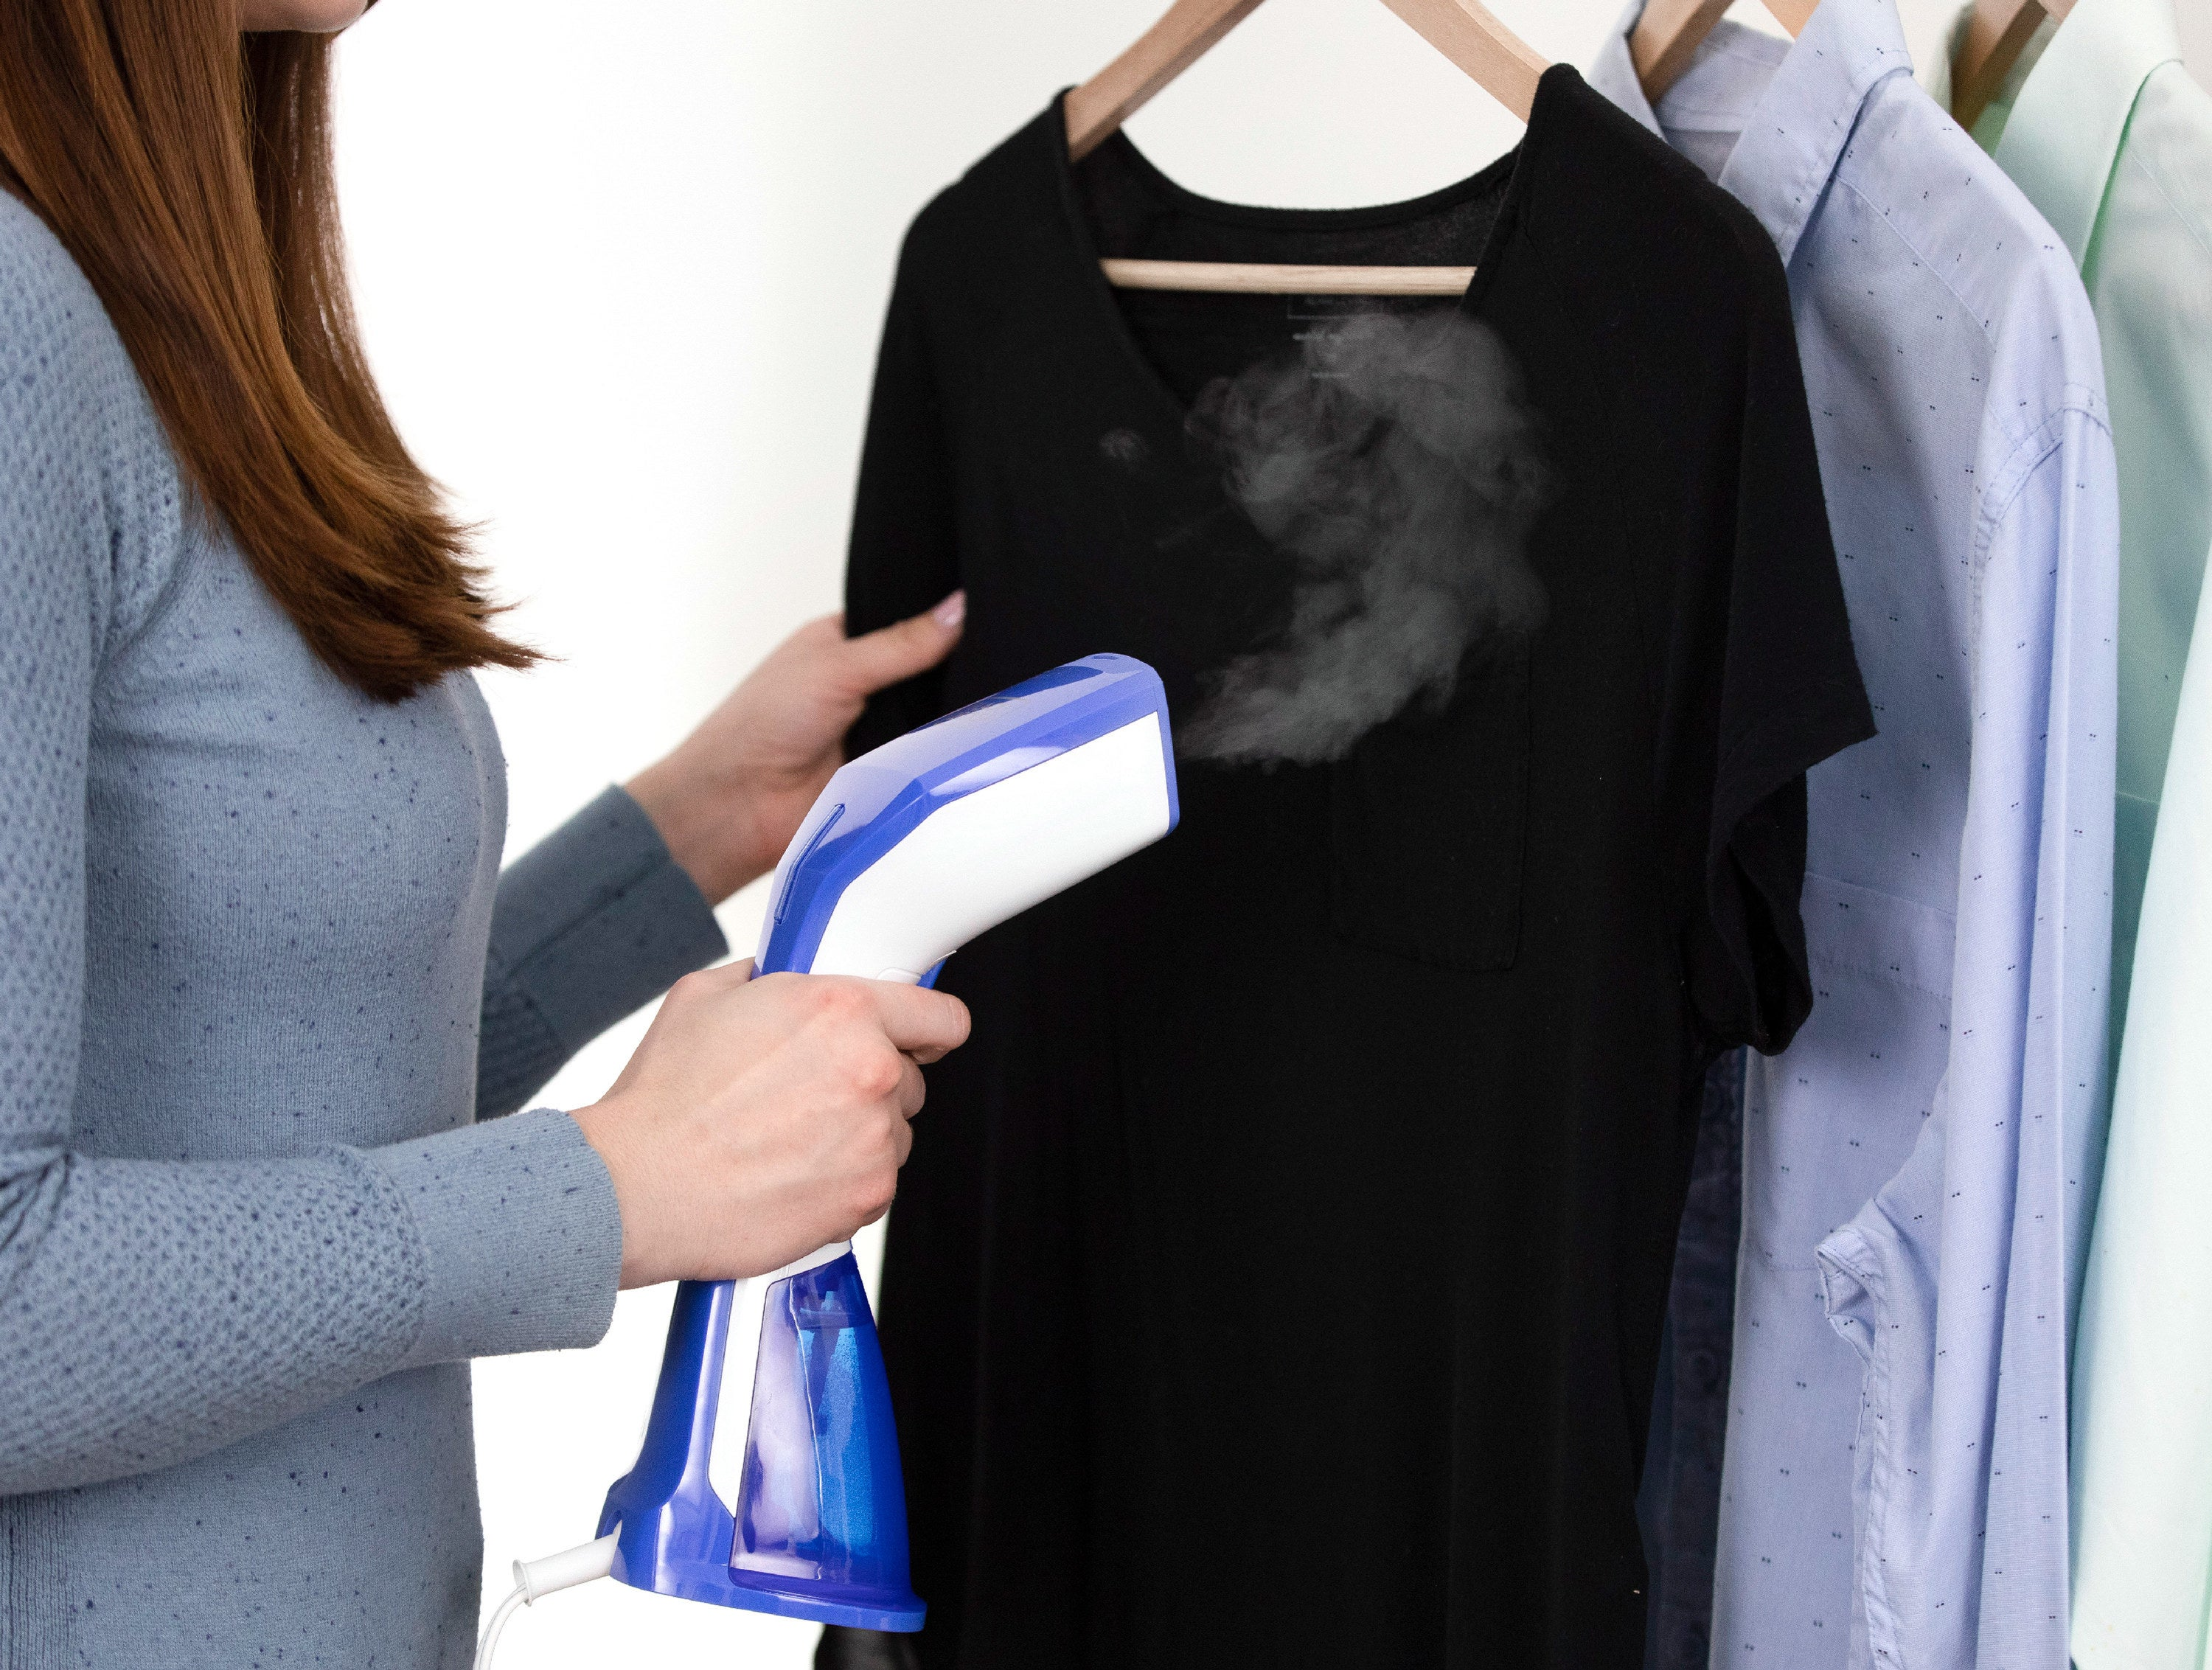 person using a blue and white garment steamer on a black shirt